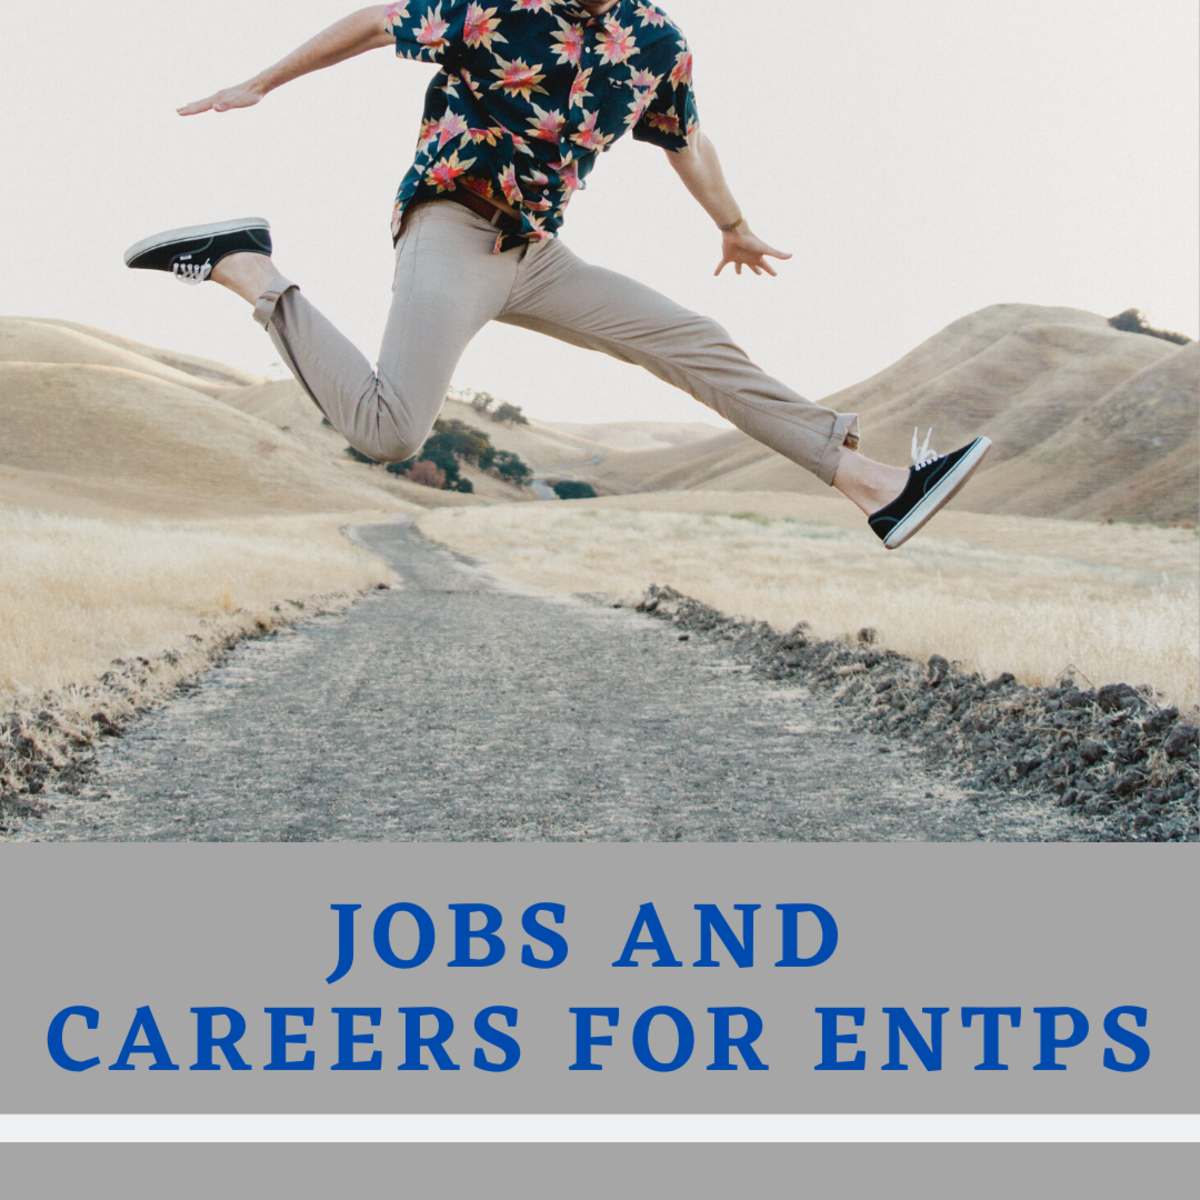 Are you an ENTP? If so, read on to see which jobs will make the best use of your high-energy personality!